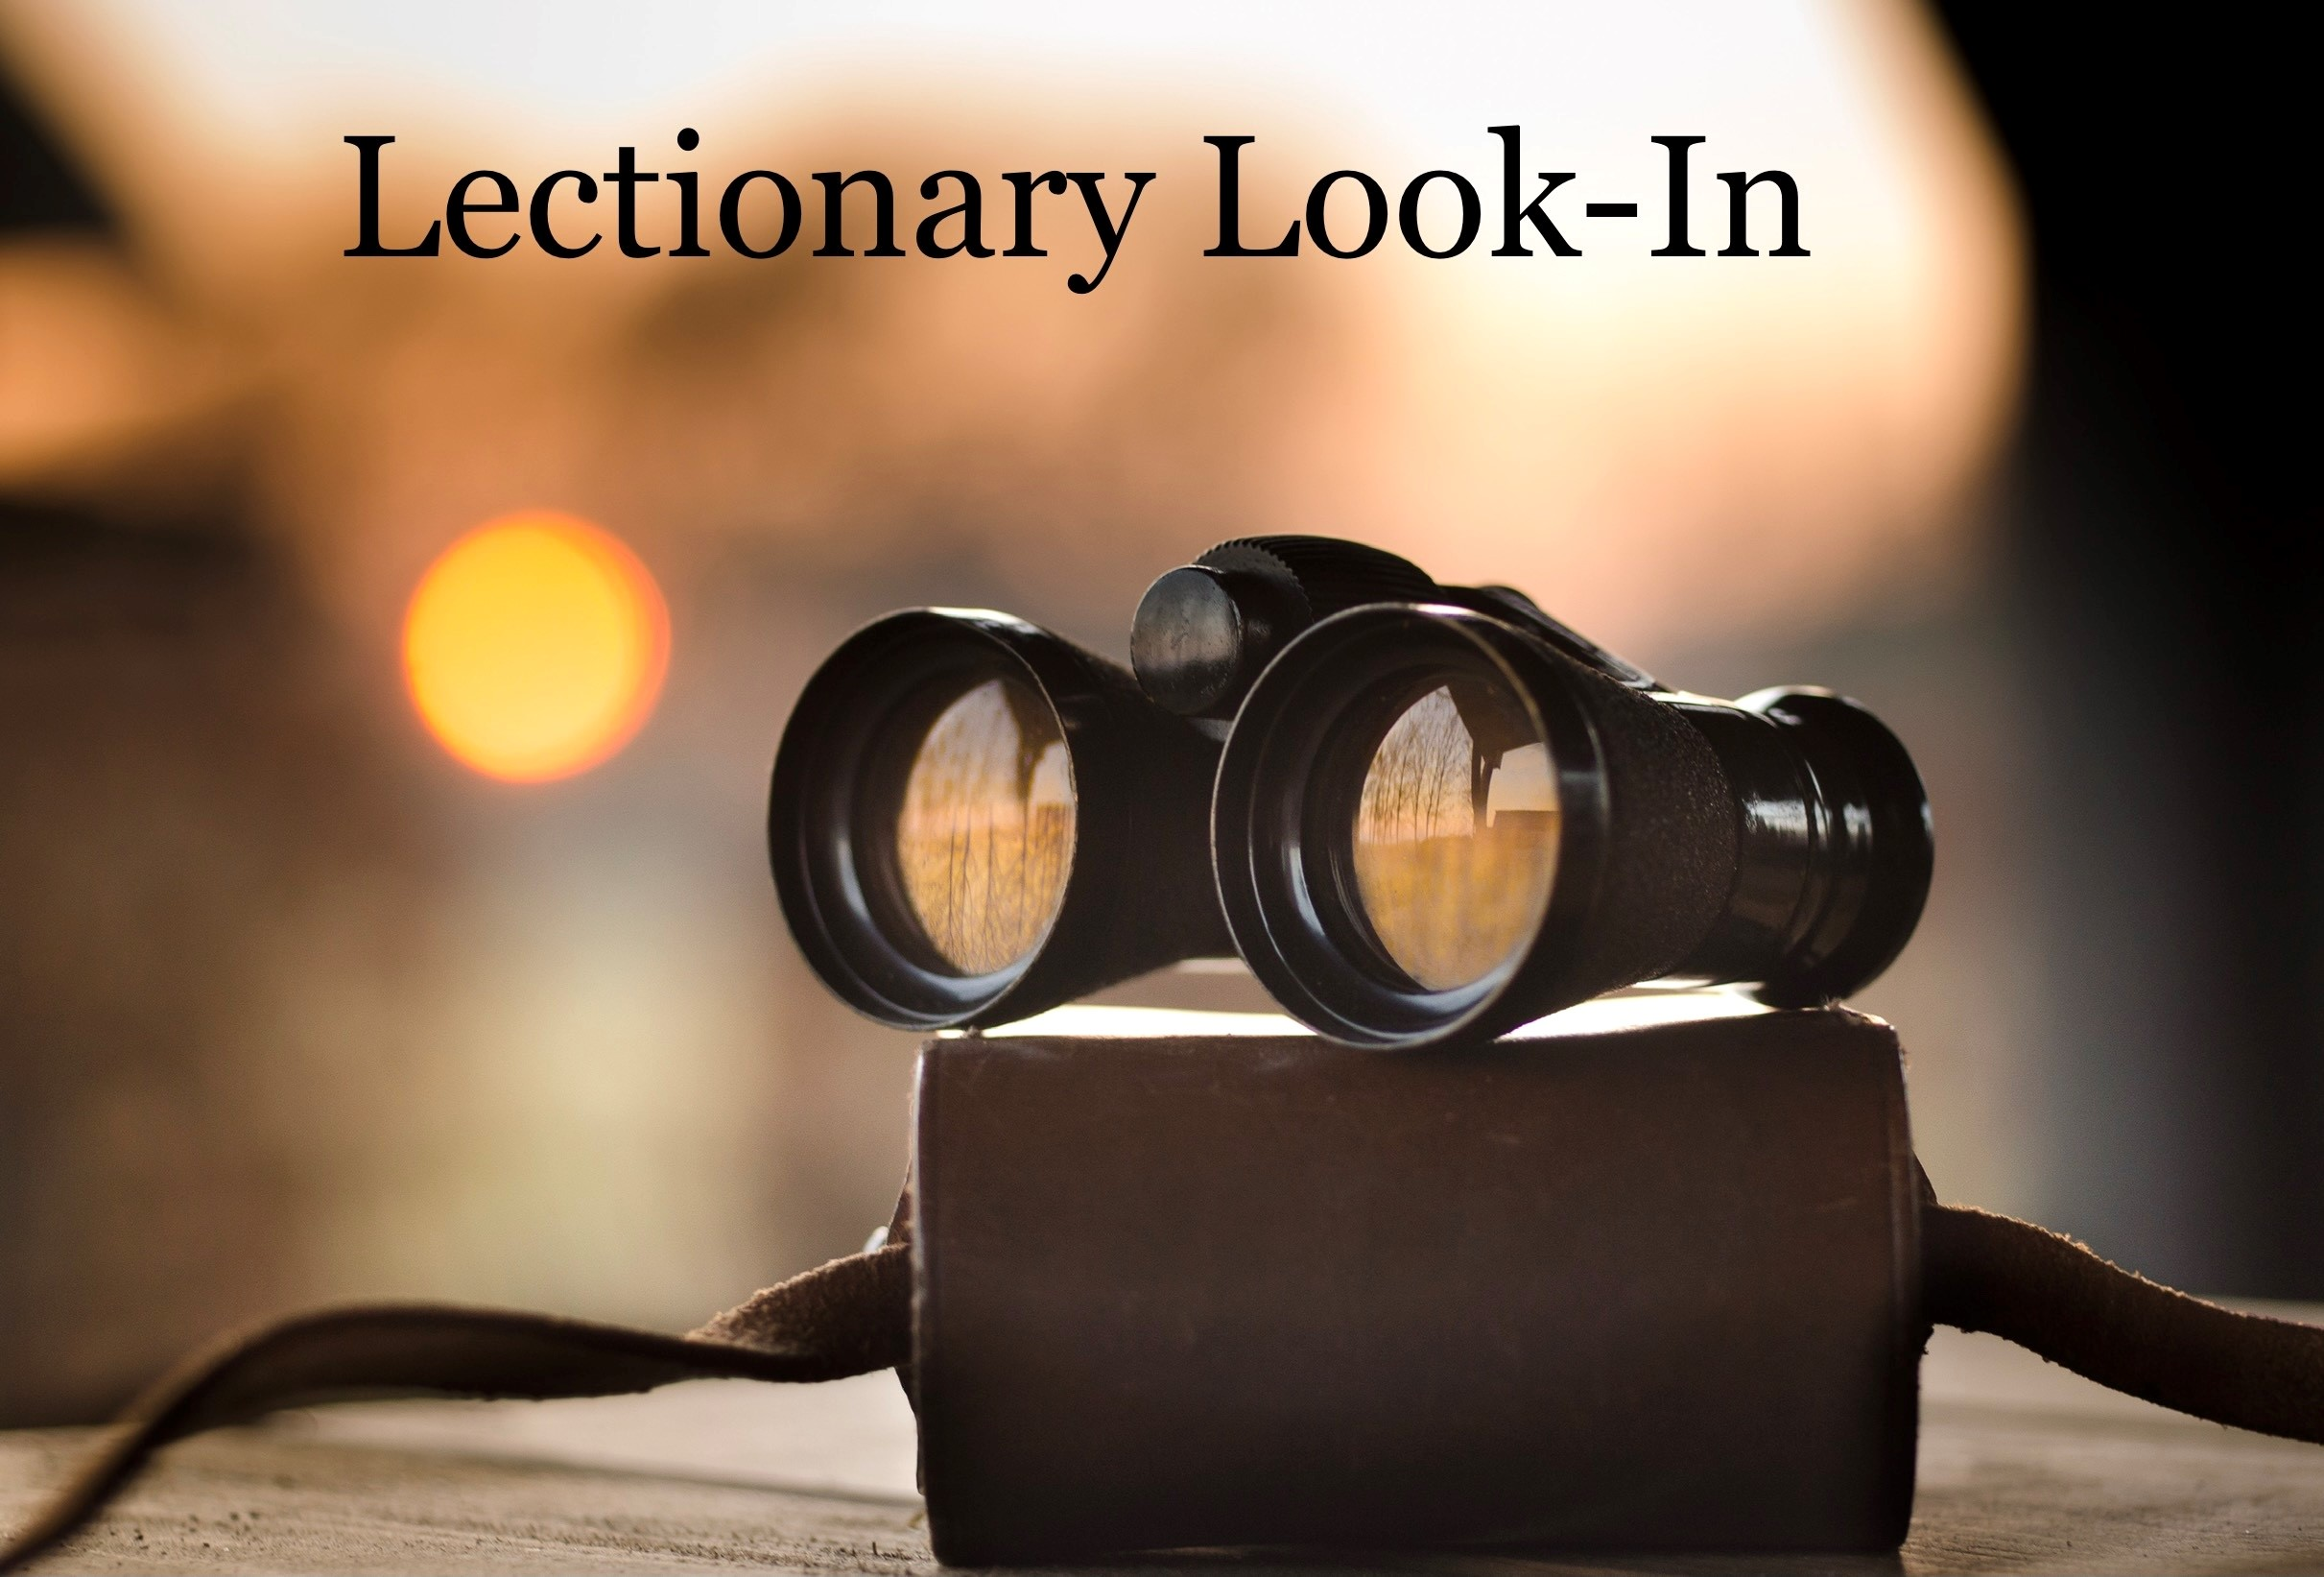 Lectionary Look-In